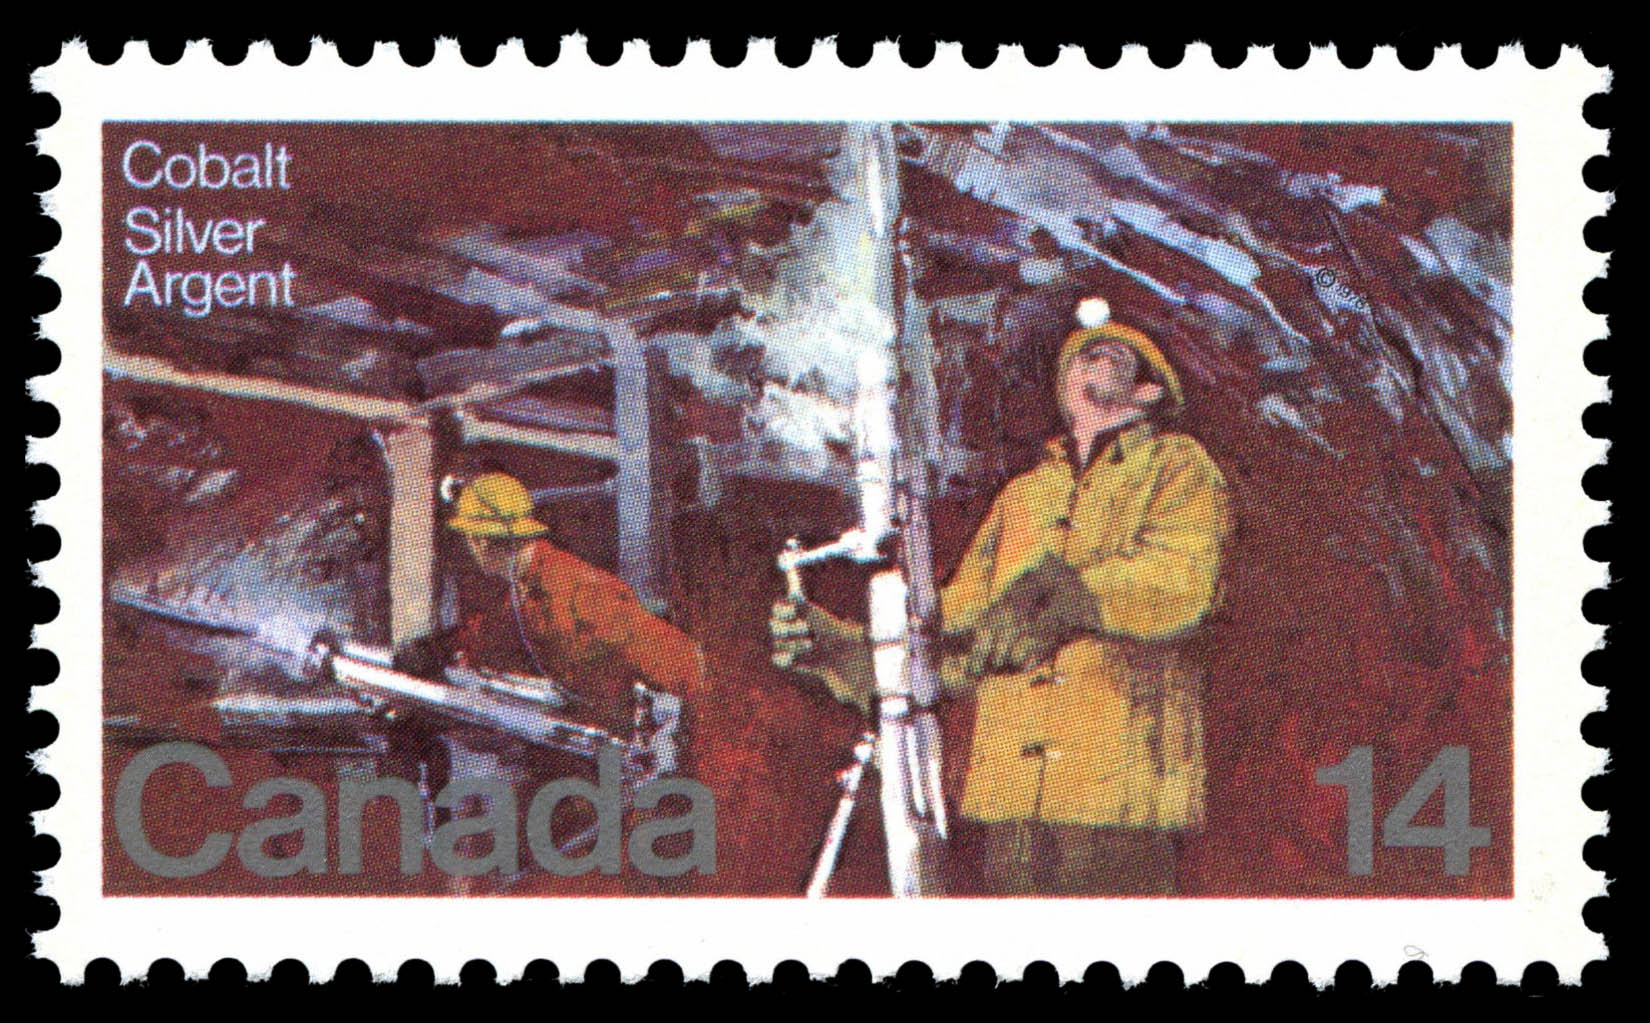 Silver Mines of Cobalt Canada Postage Stamp | Resources